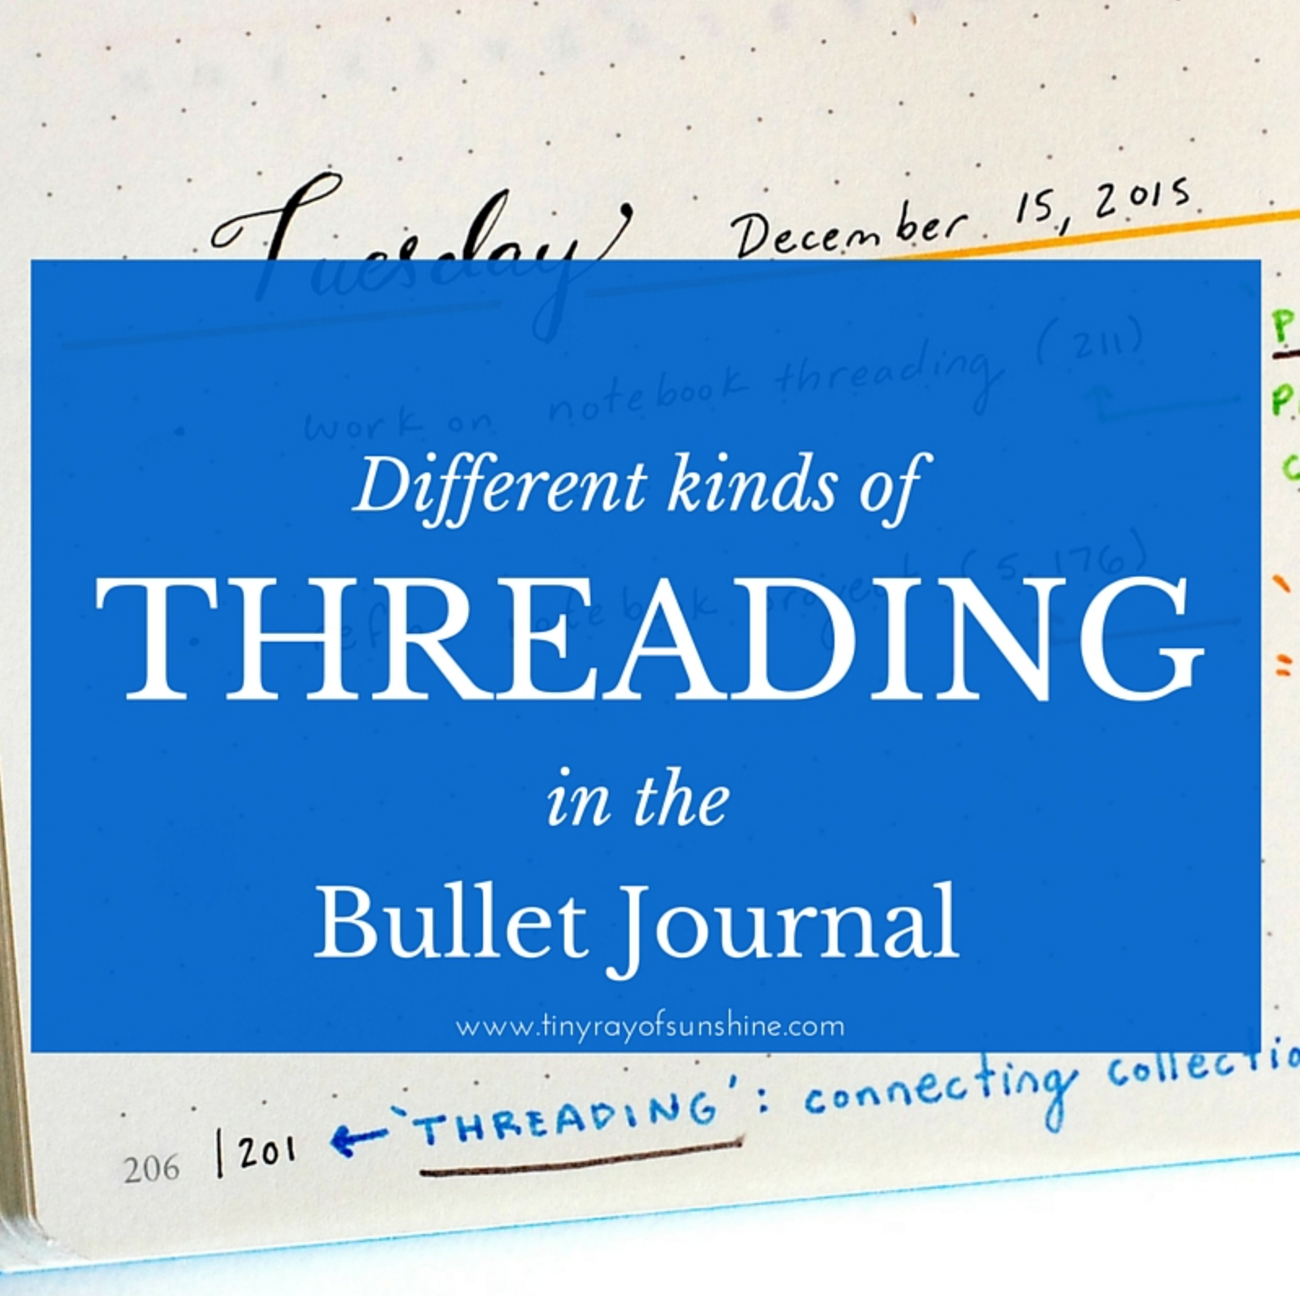 d ifferent kinds of threading in the bullet journal